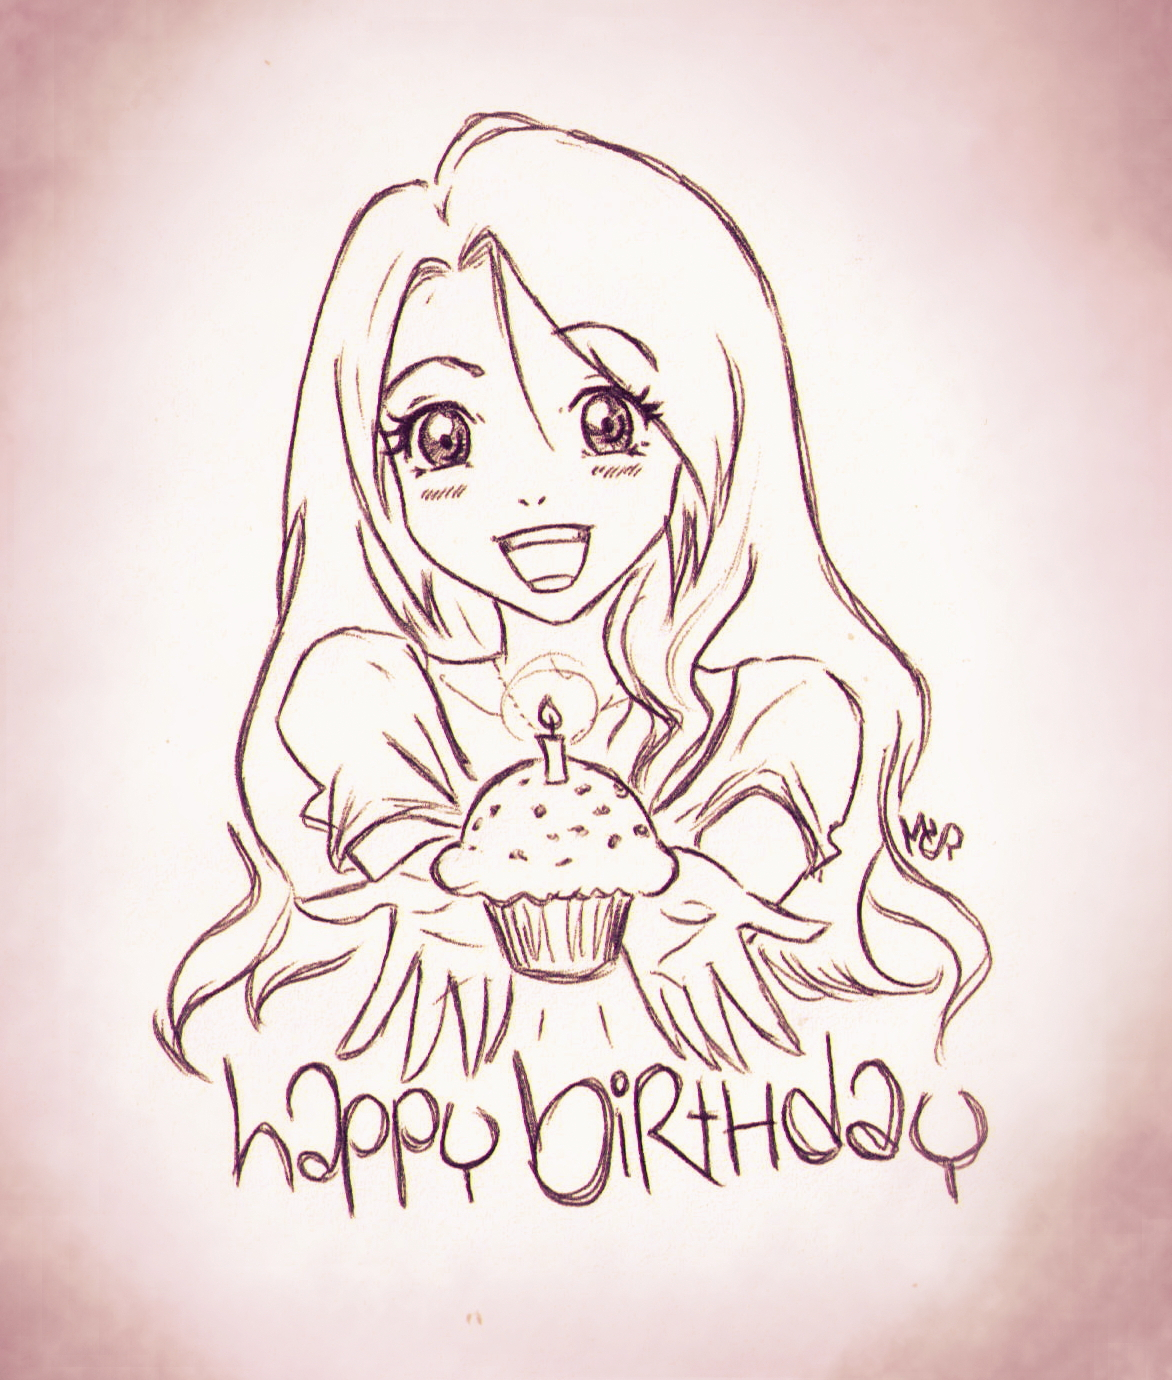 birthday drawing ideas ; pencil-sketch-alone-happy-birthday-images-birthday-anime-girl-doodle-by-ladyinsilver-on-deviantart